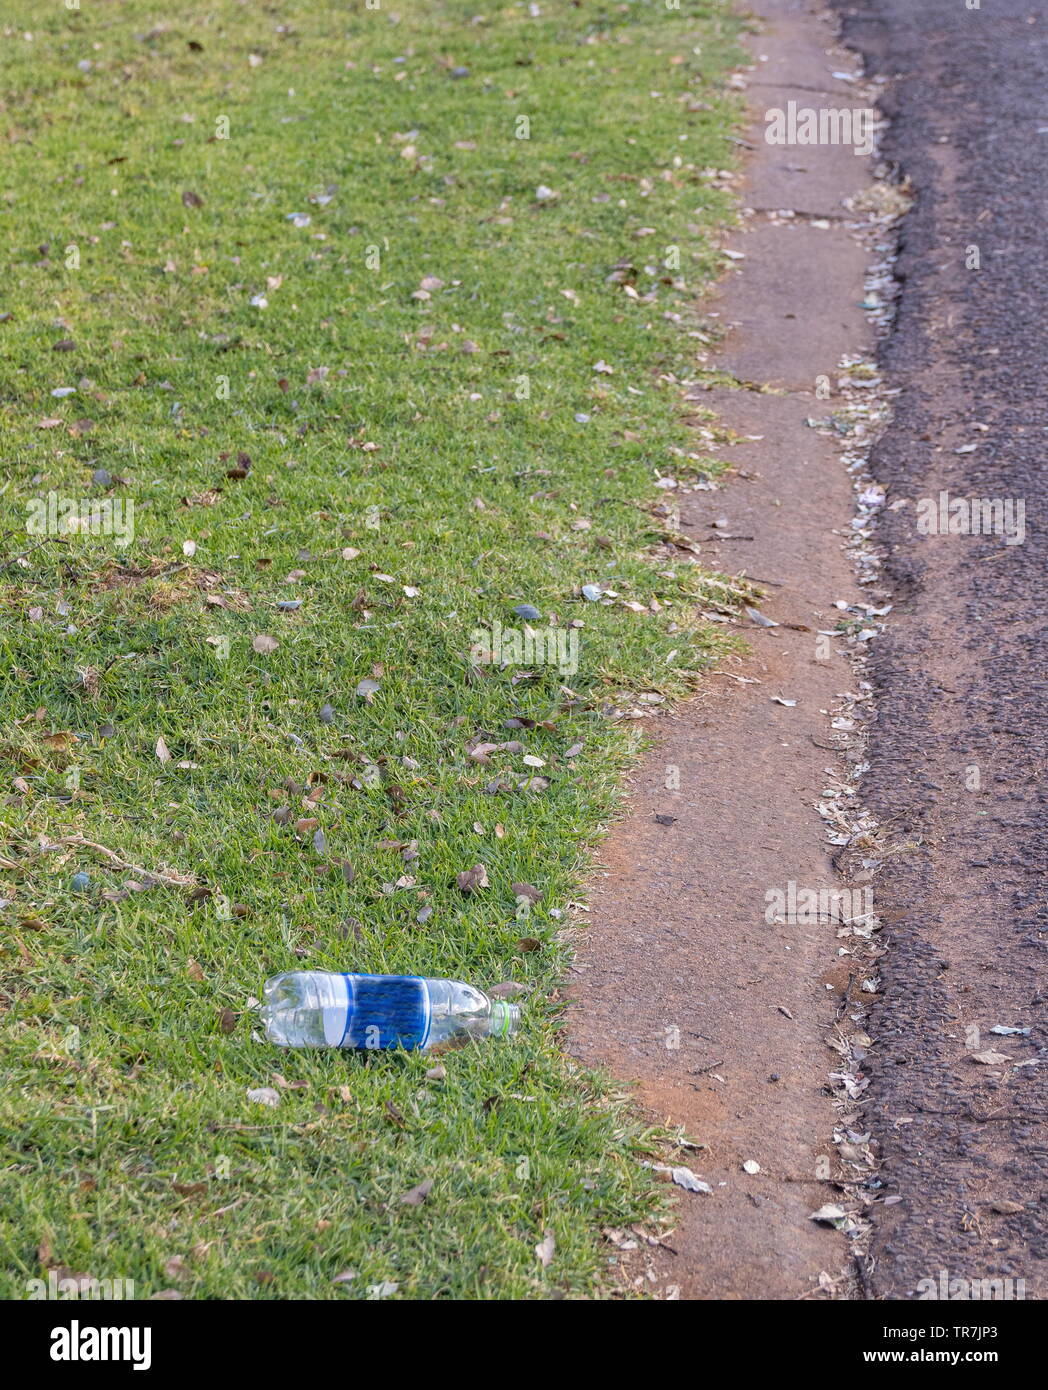 A plastic bottle lies discarded on a pavement next to a public street image with copy space - Stock Image